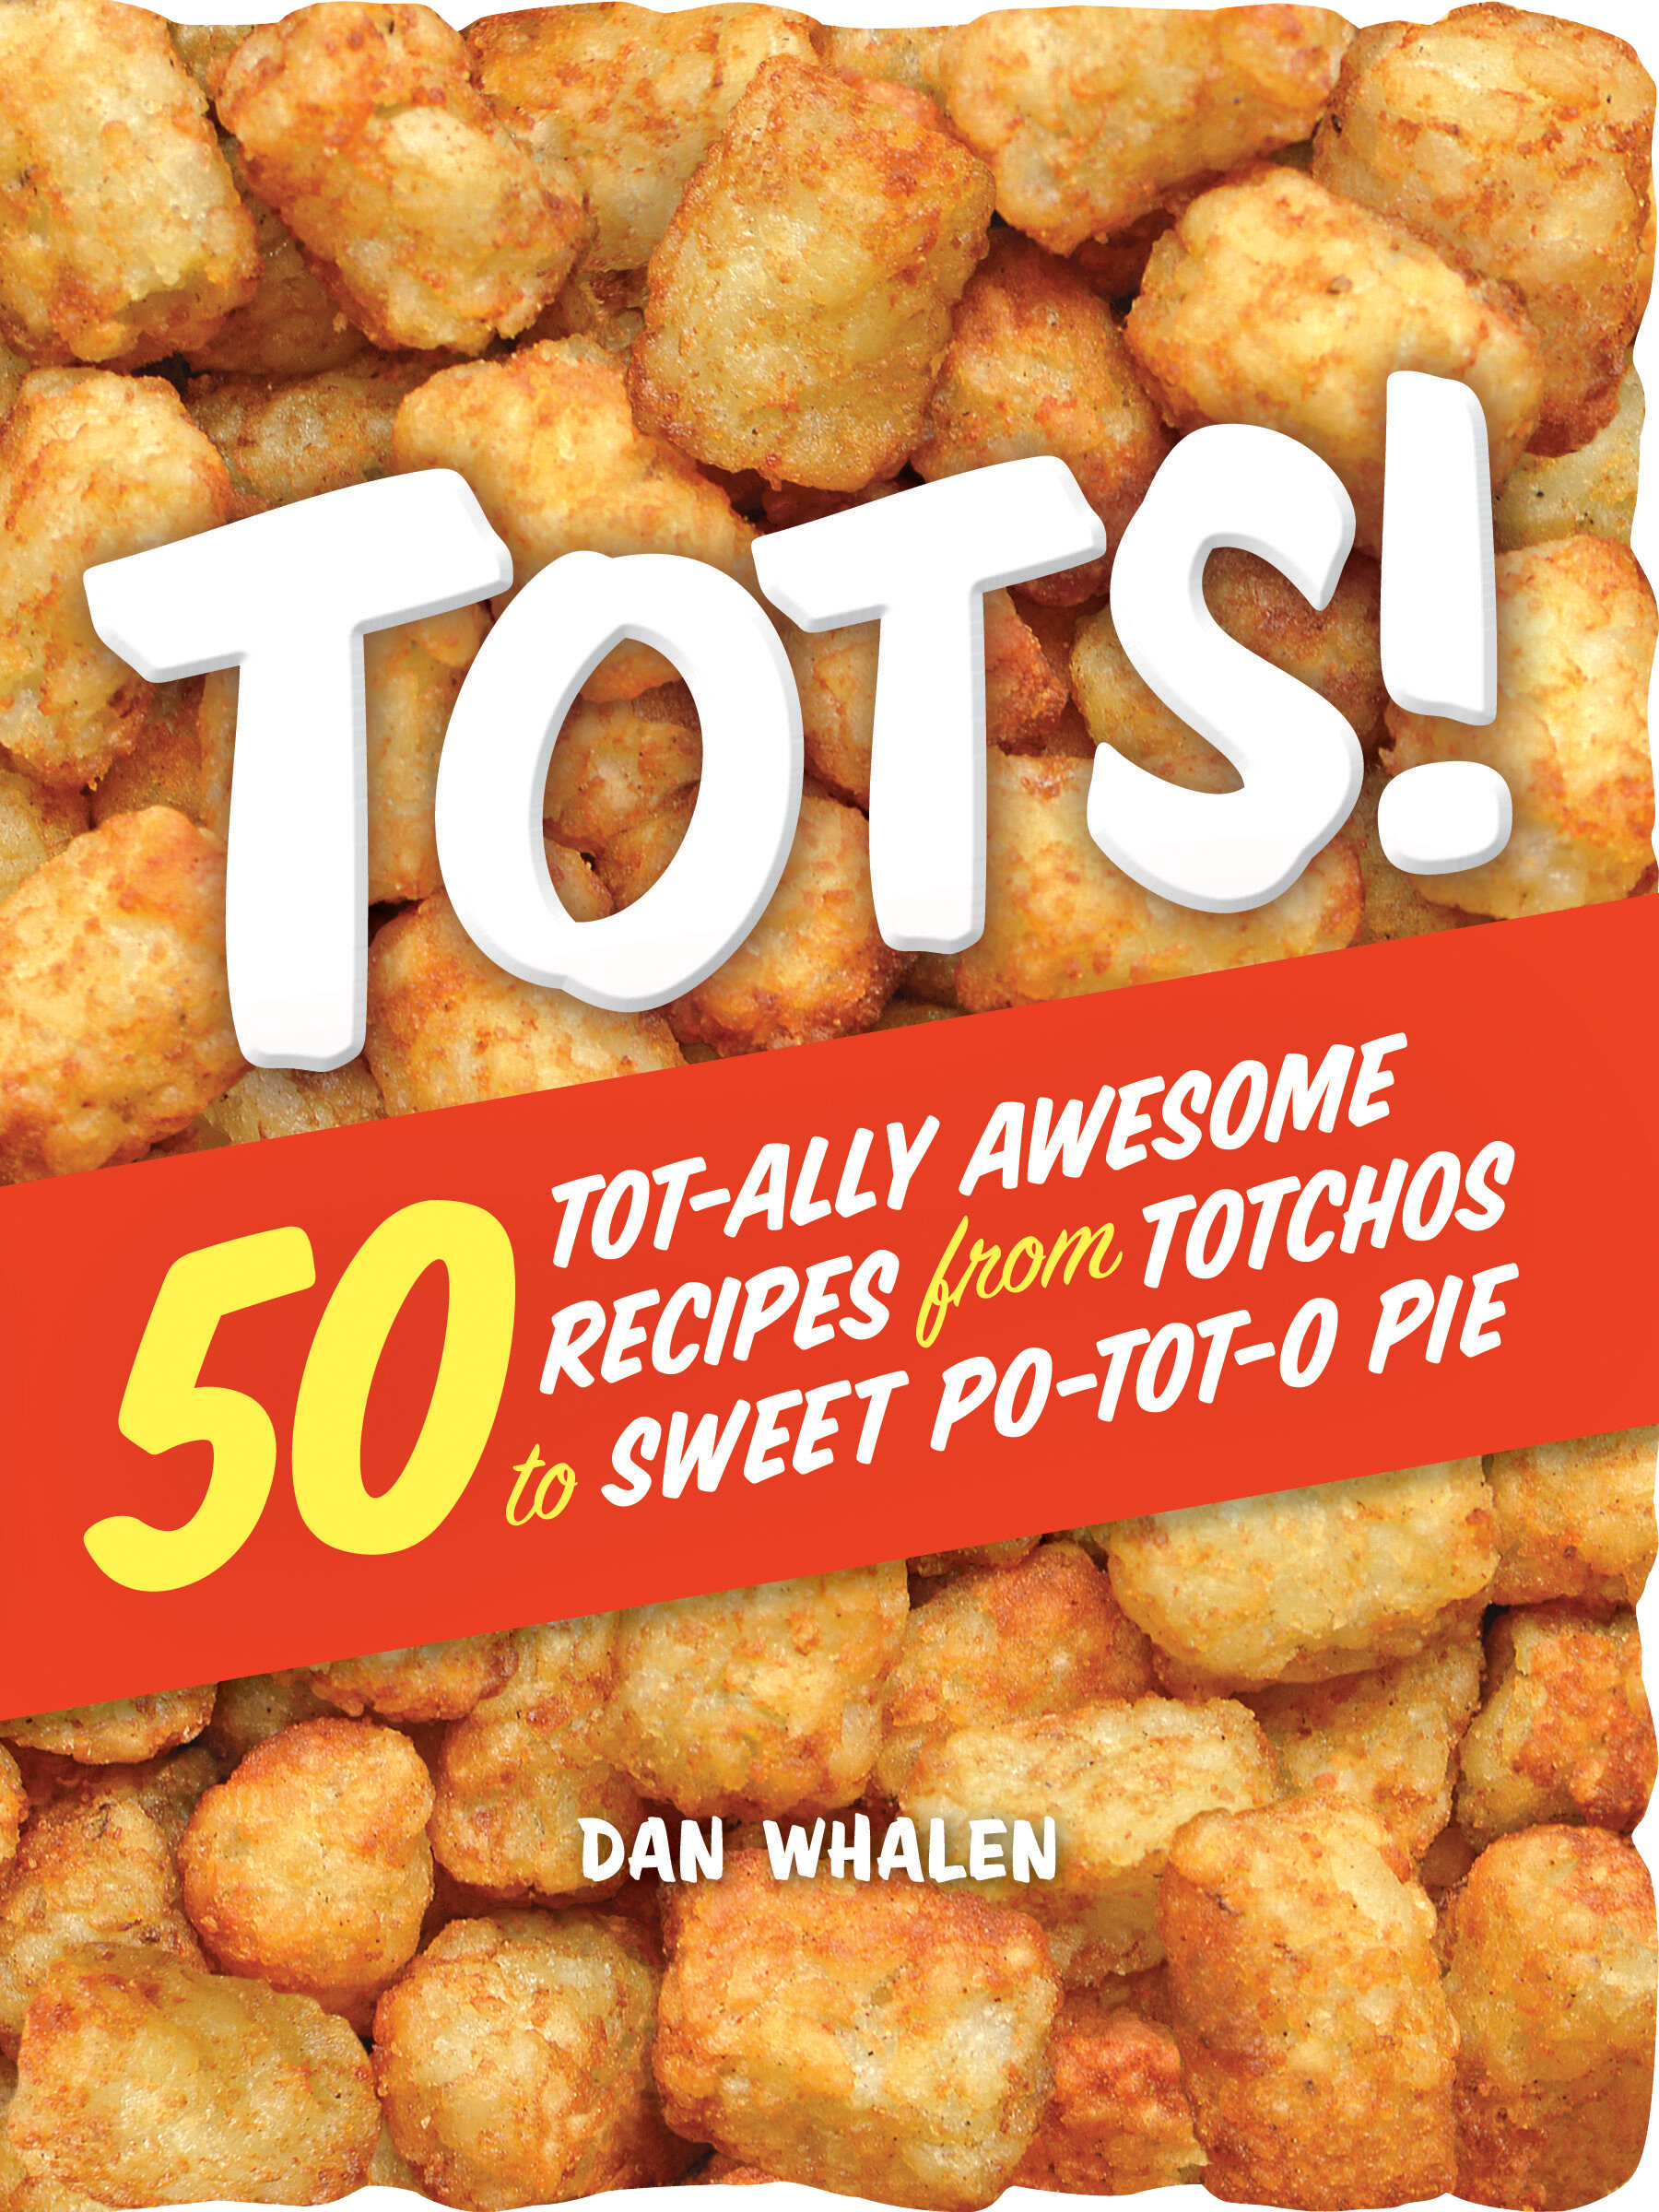 Dan Whalen's Tots: 50 Tot-ally Awesome Recipes for Totchos to Sweet Po-tot-o Pie